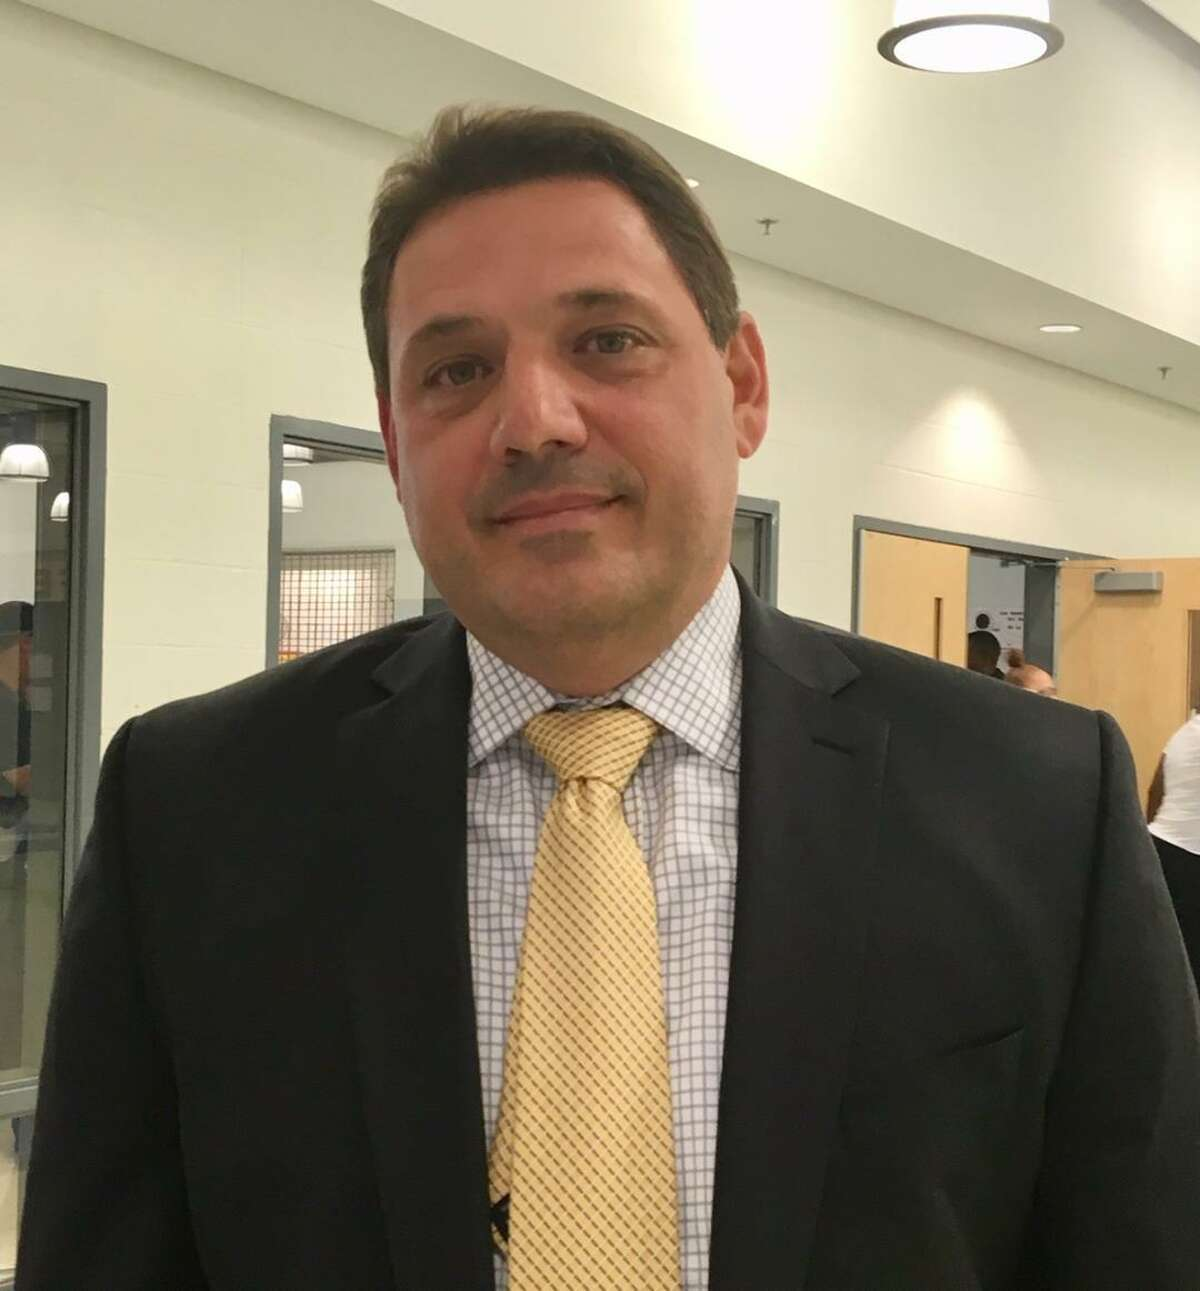 Acting Bridgeport Superintendent of Schools Mike Testani wants to review what other districts have done in instituting a distance learning Help Line for parents and students.